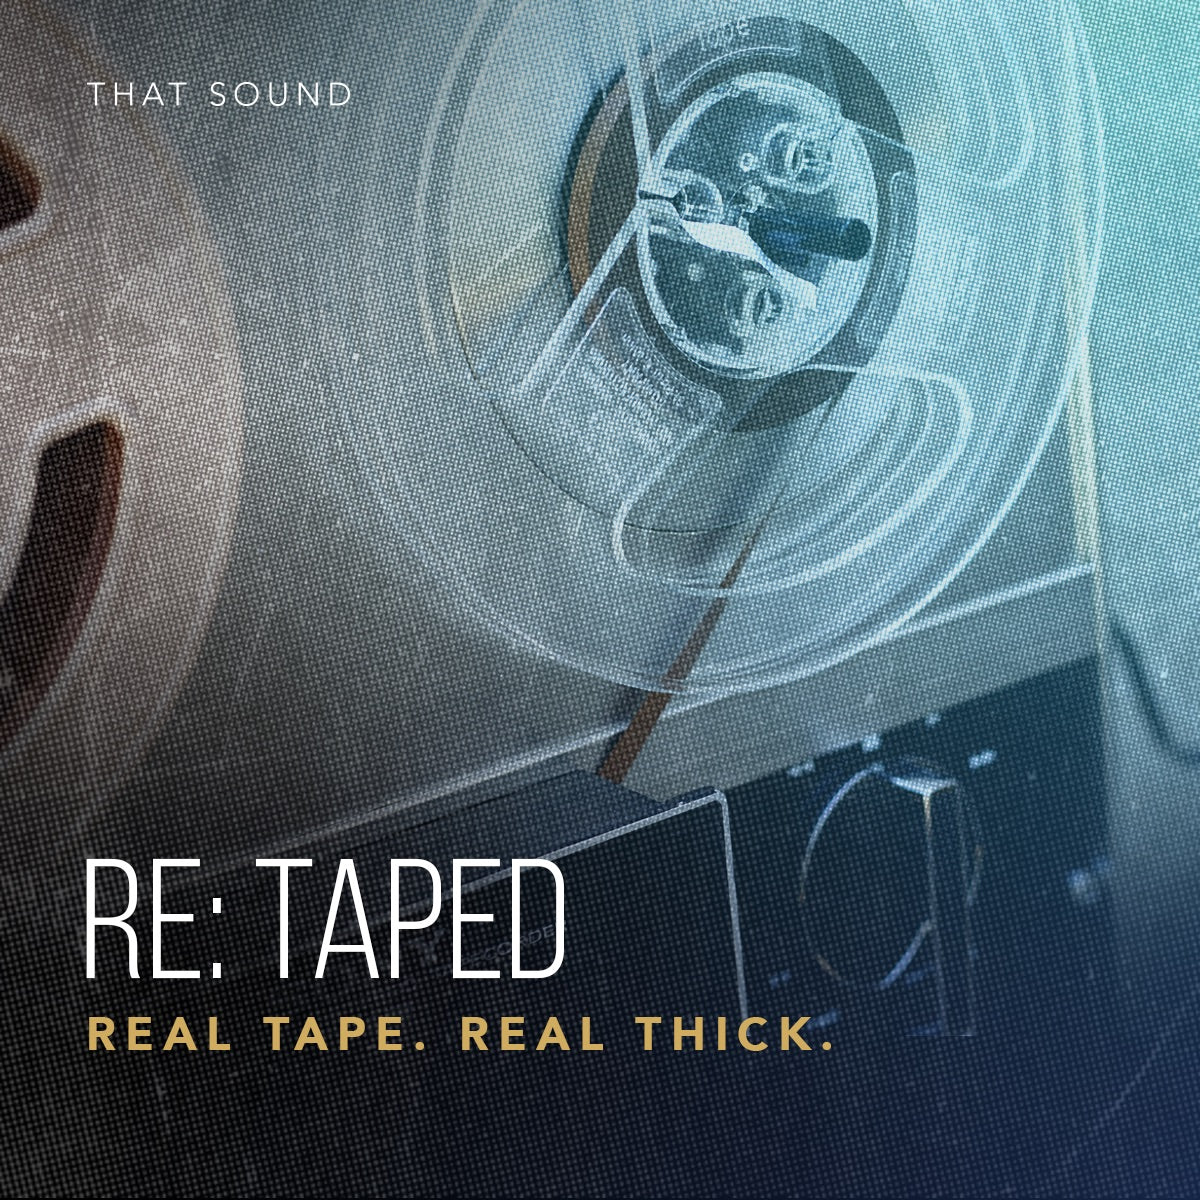 Re: Taped